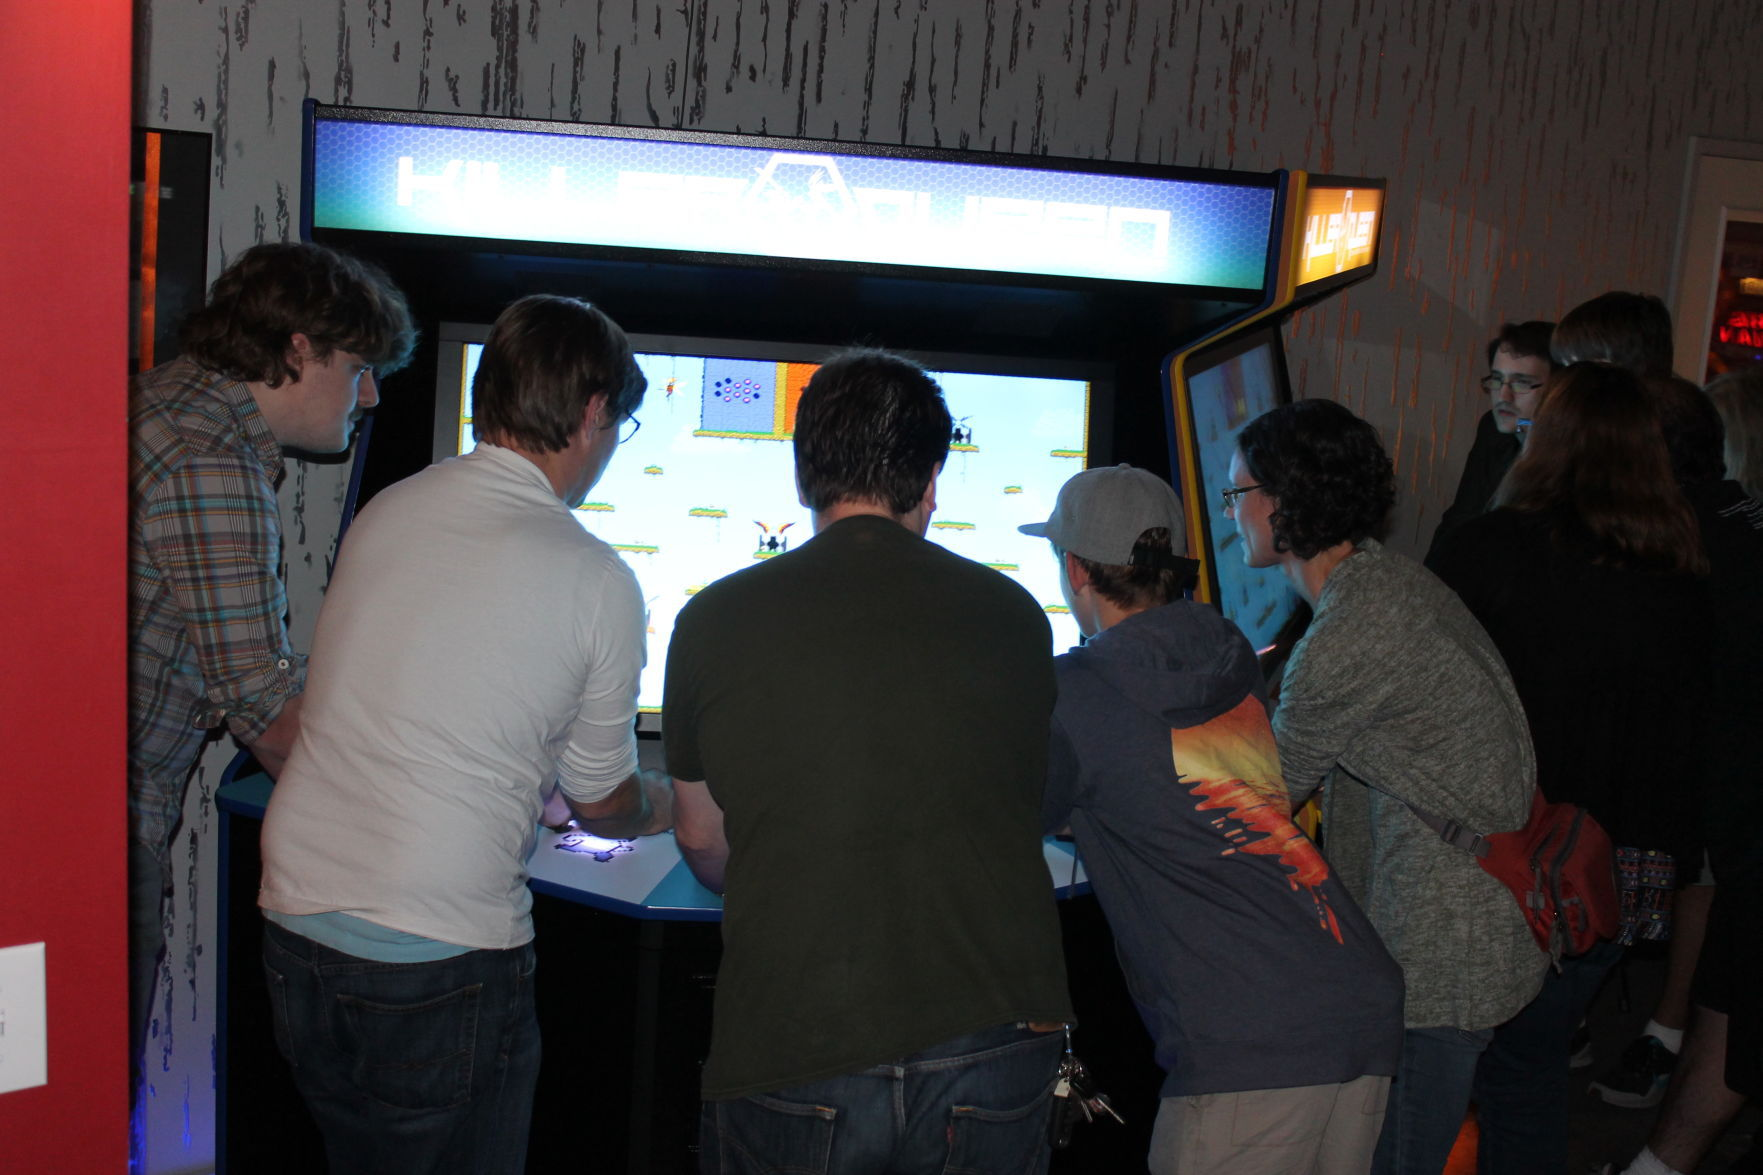 Co-op arcade game Killer Queen has Madison players buzzing | City ...